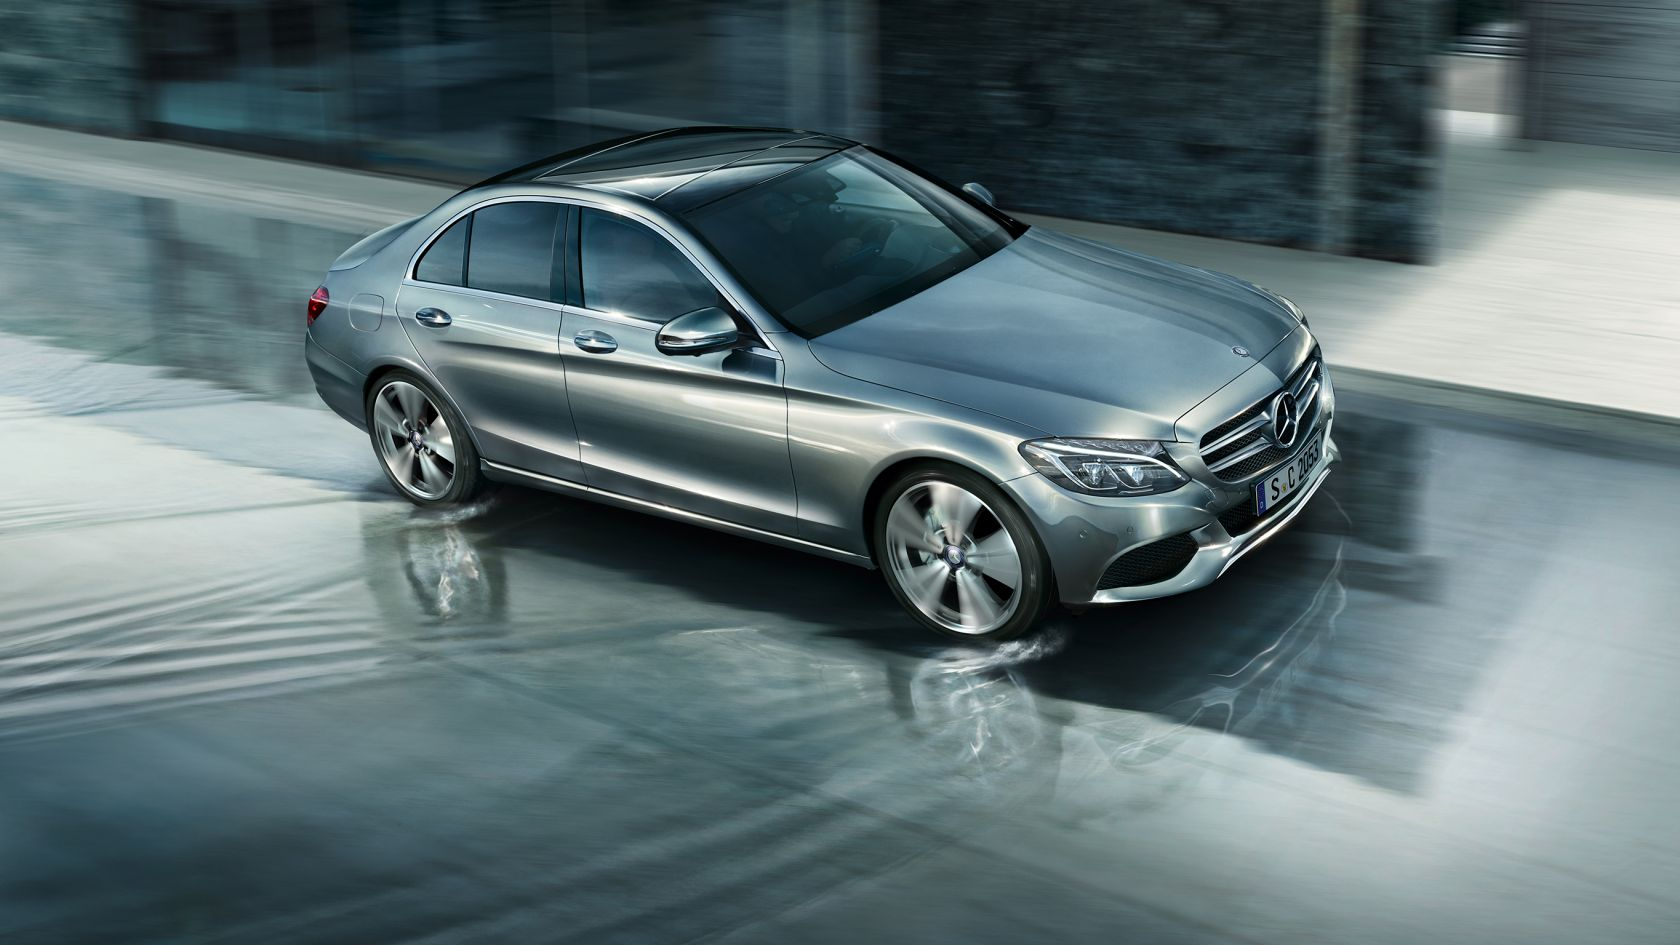 These Are The Most Wanted Cars In South Africa Right Now